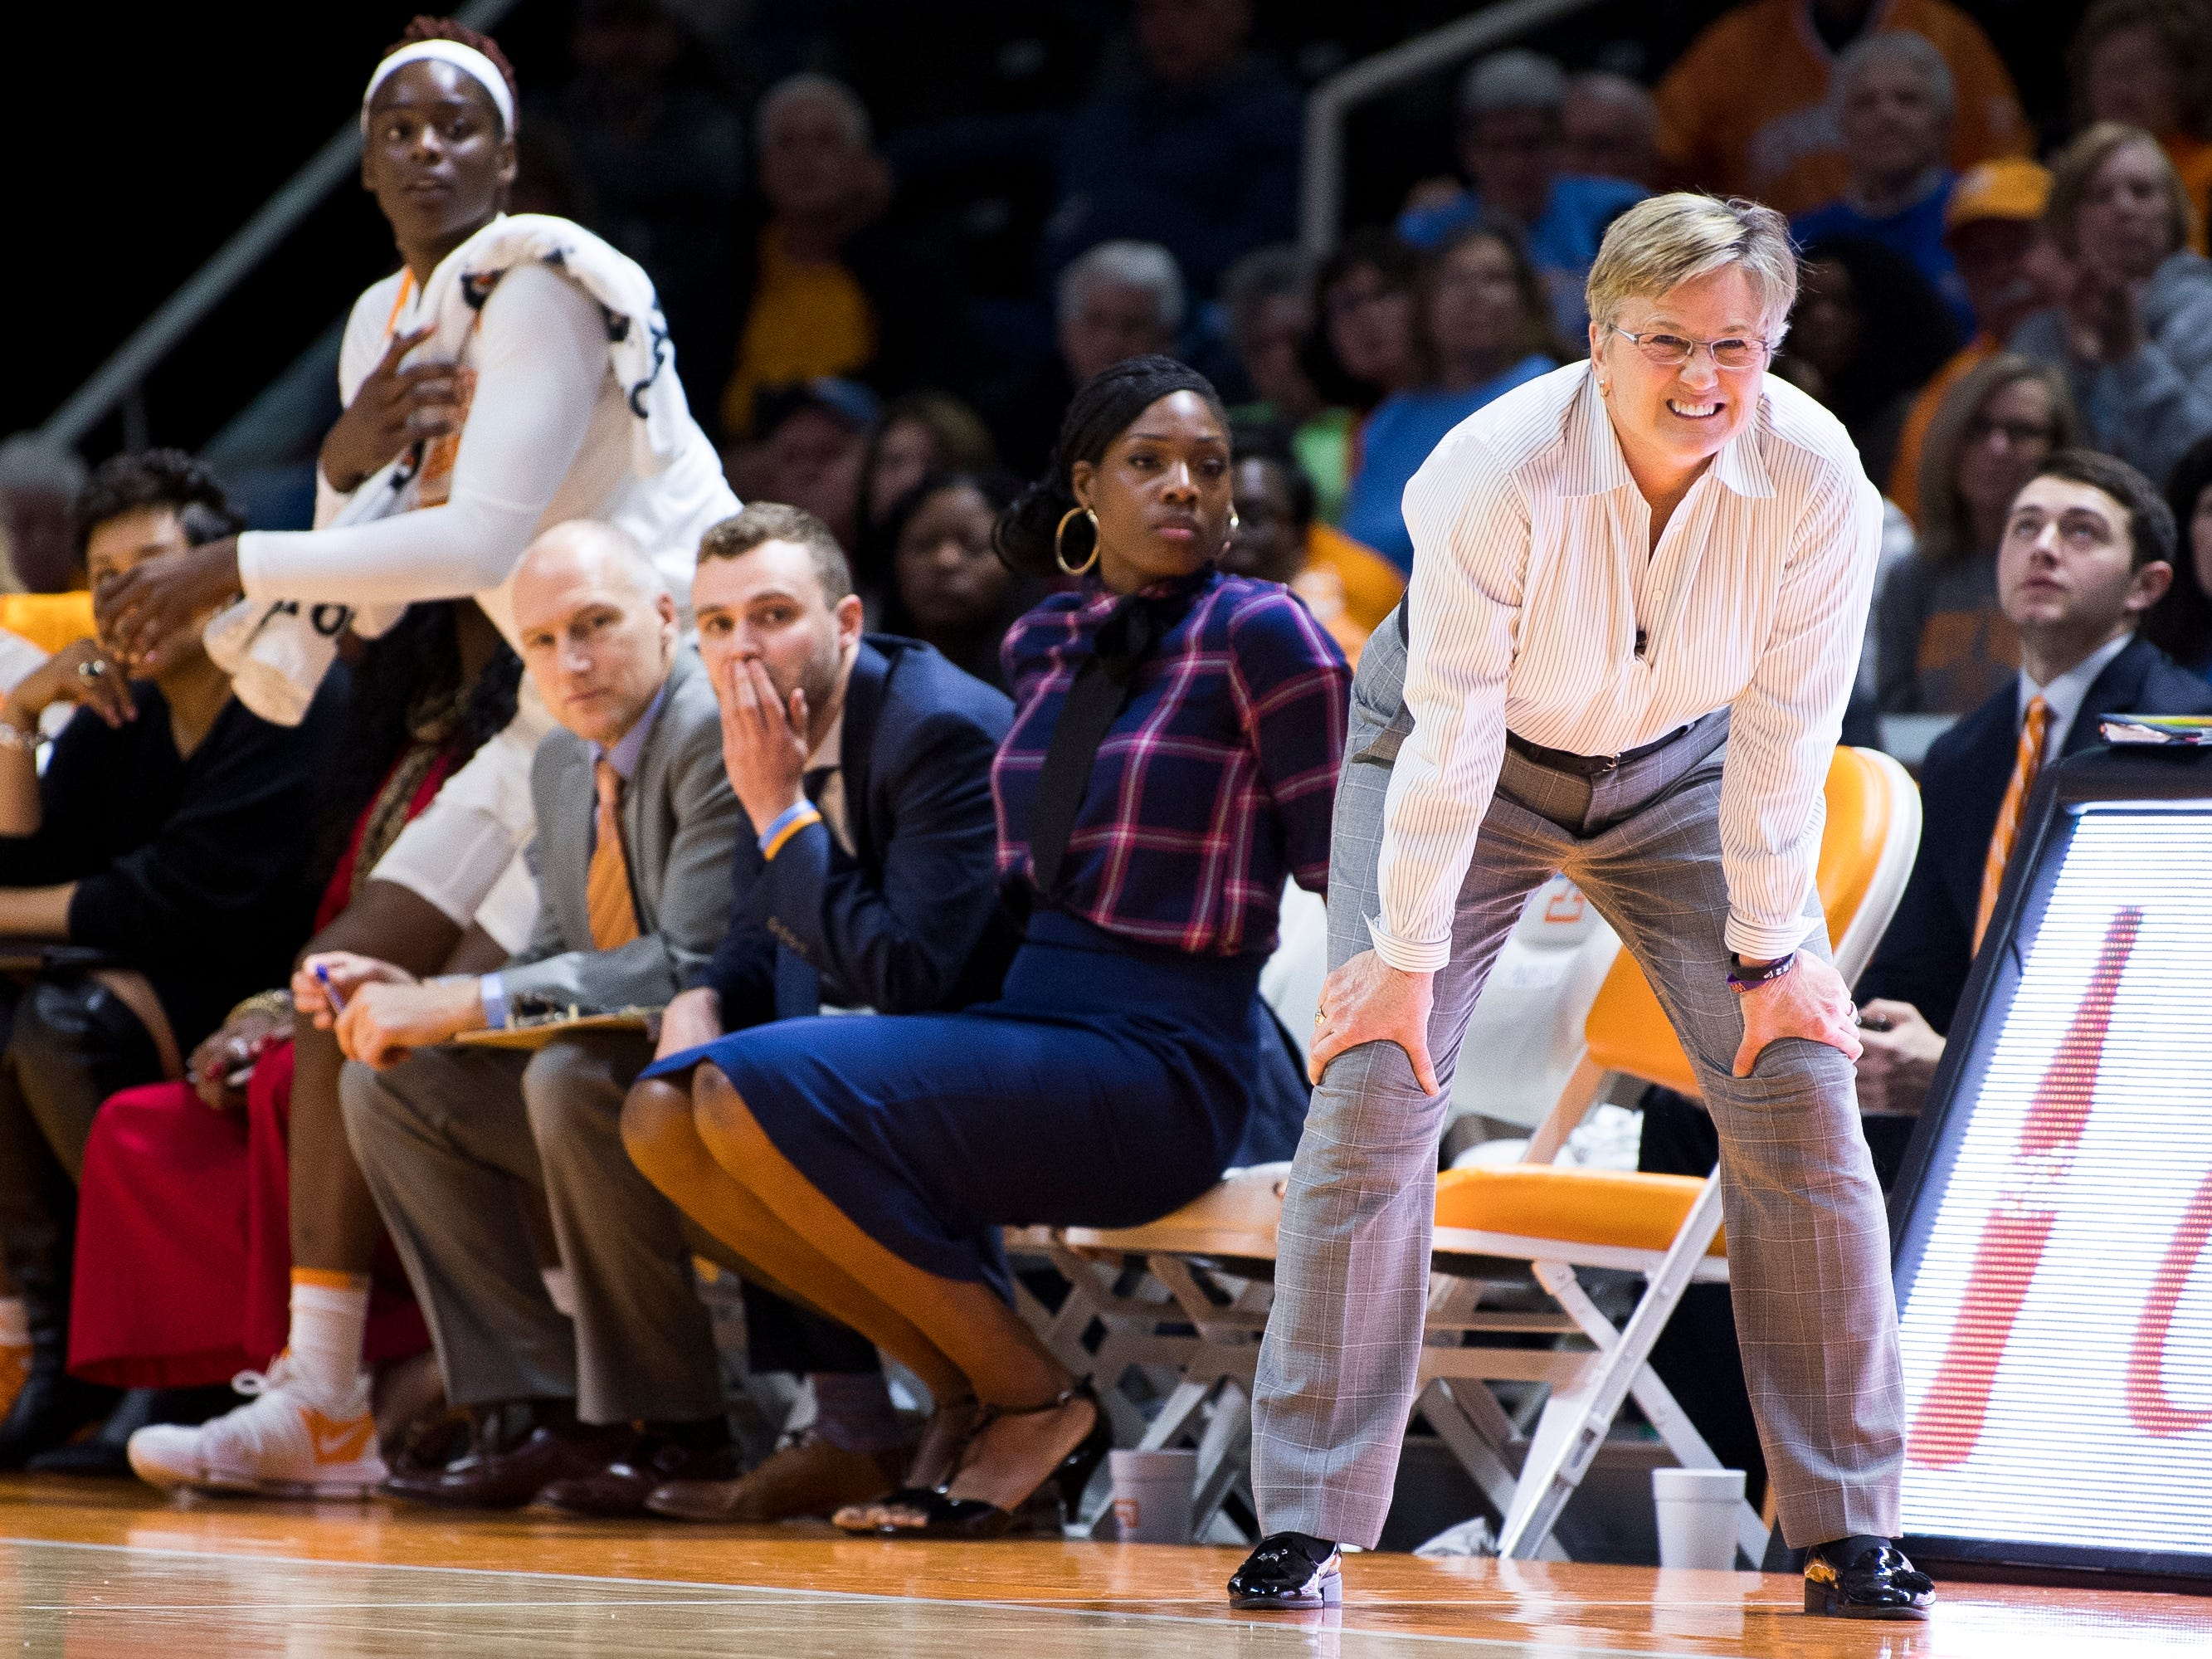 Tennessee Head Coach Holly Warlick, right, watches her team play on defense during the Lady Vols' home SEC game against South Carolina at Thompson-Boling Arena in Knoxville on Sunday, February 24, 2019.